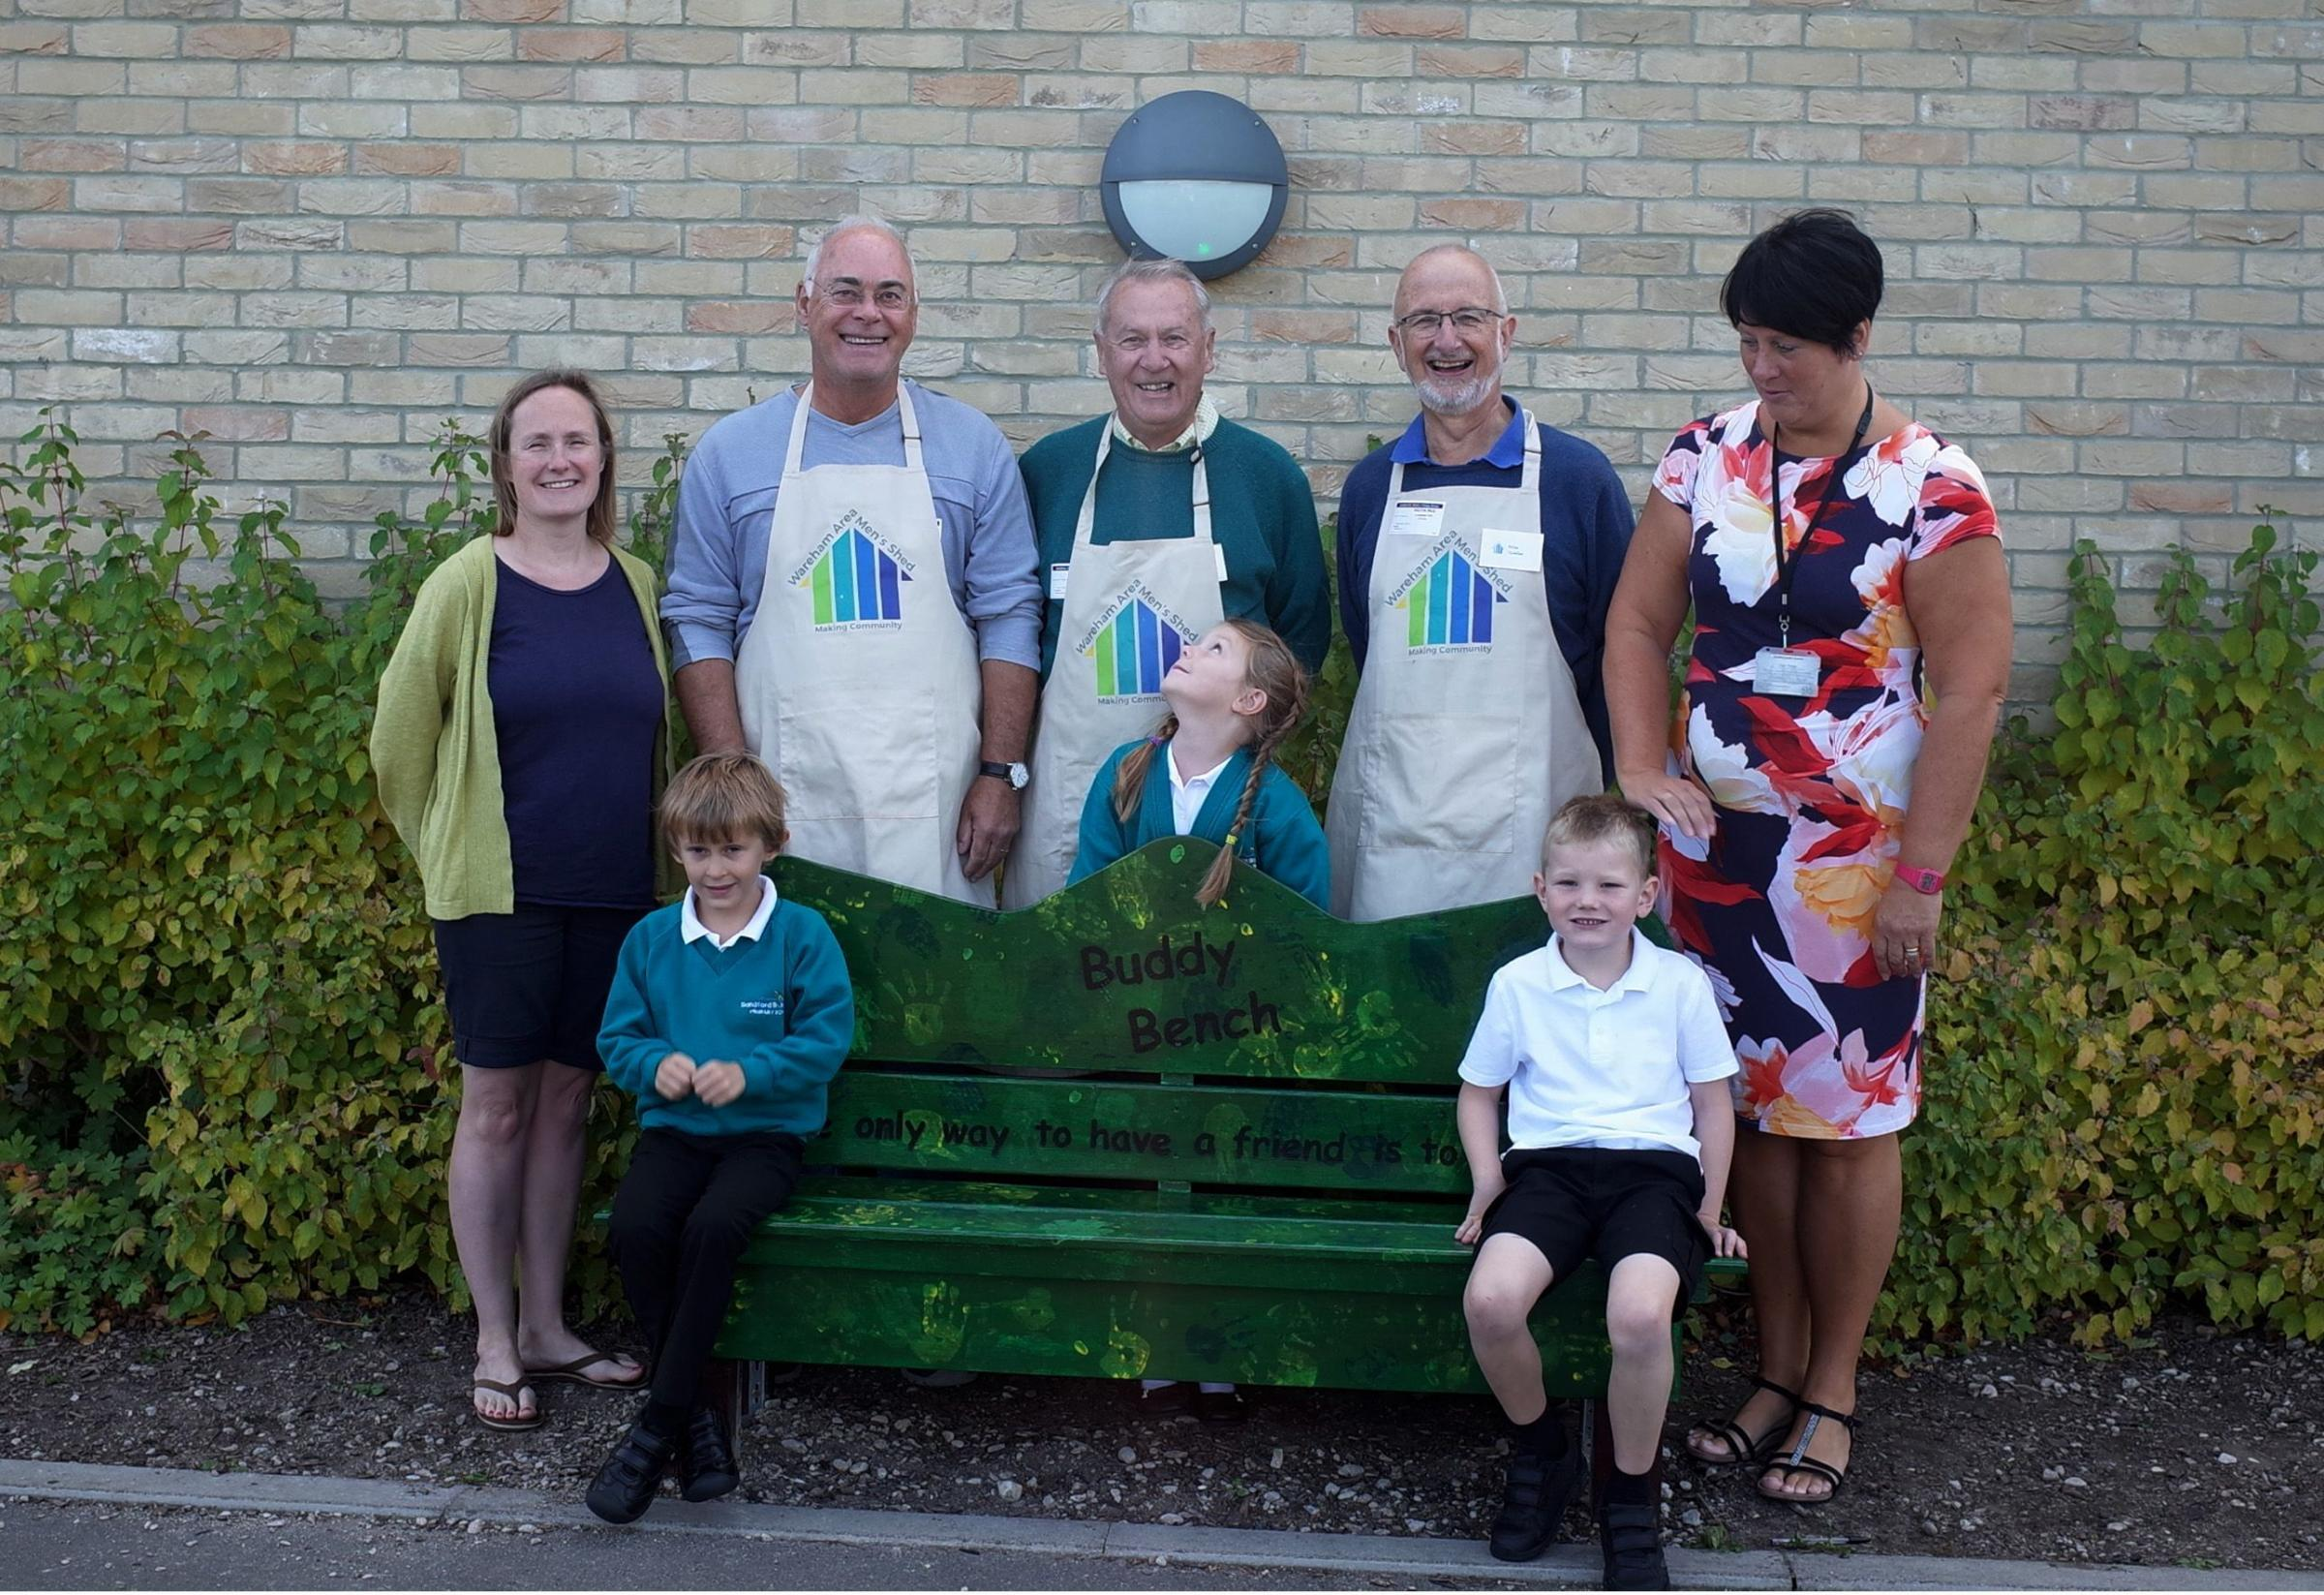 Buddy Bench installed at primary school